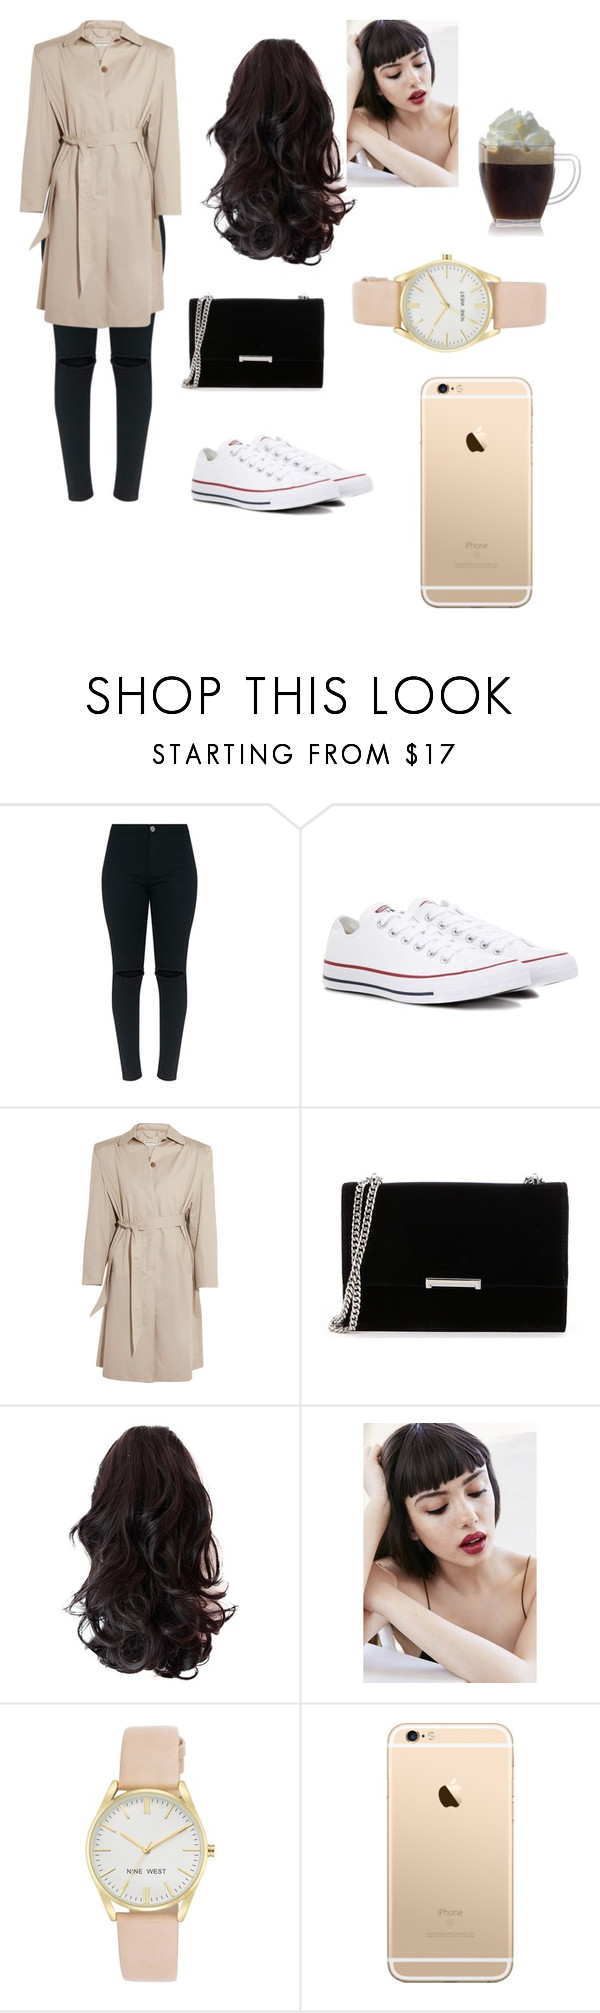 """""""Untitled #10"""" by carolinegrace072 on Polyvore featuring beauty, Converse, Balenciaga, Ivanka Trump, Obsessive Compulsive Cosmetics and Nine West"""